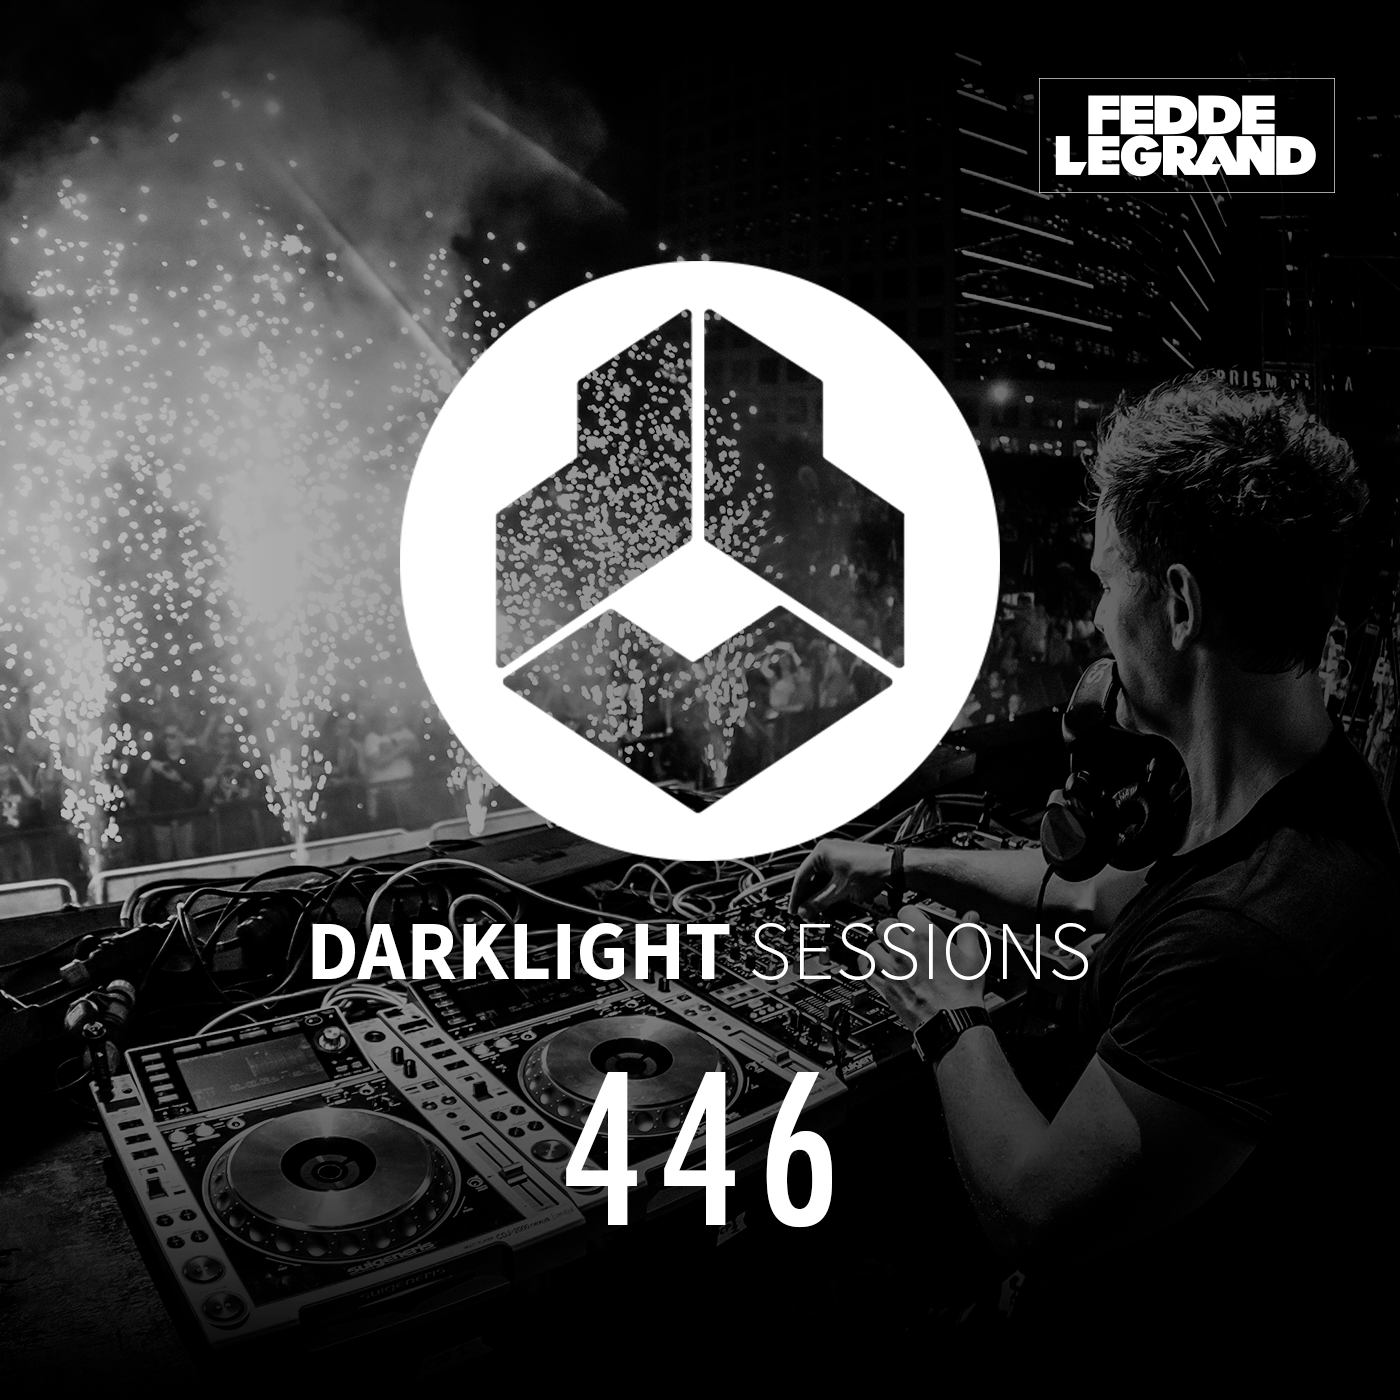 Darklight Sessions 446